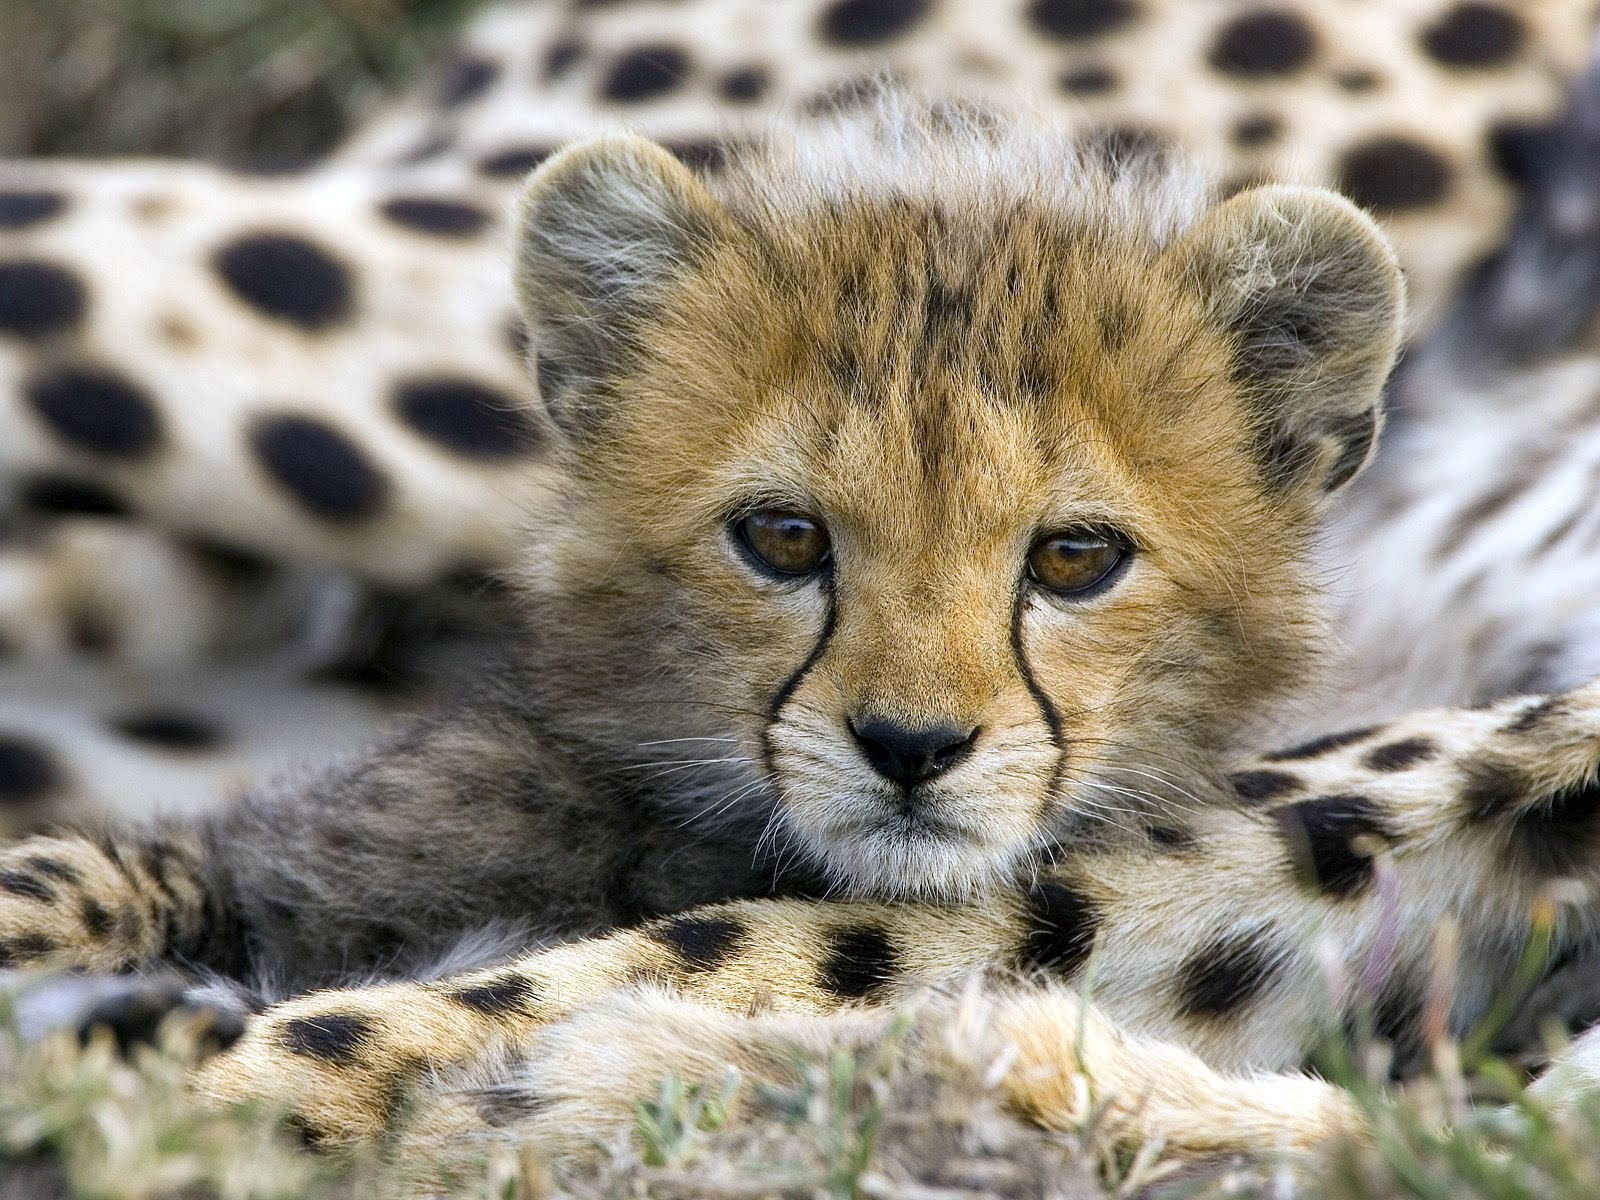 Little cheetah pets cute and docile cheetah voltagebd Image collections